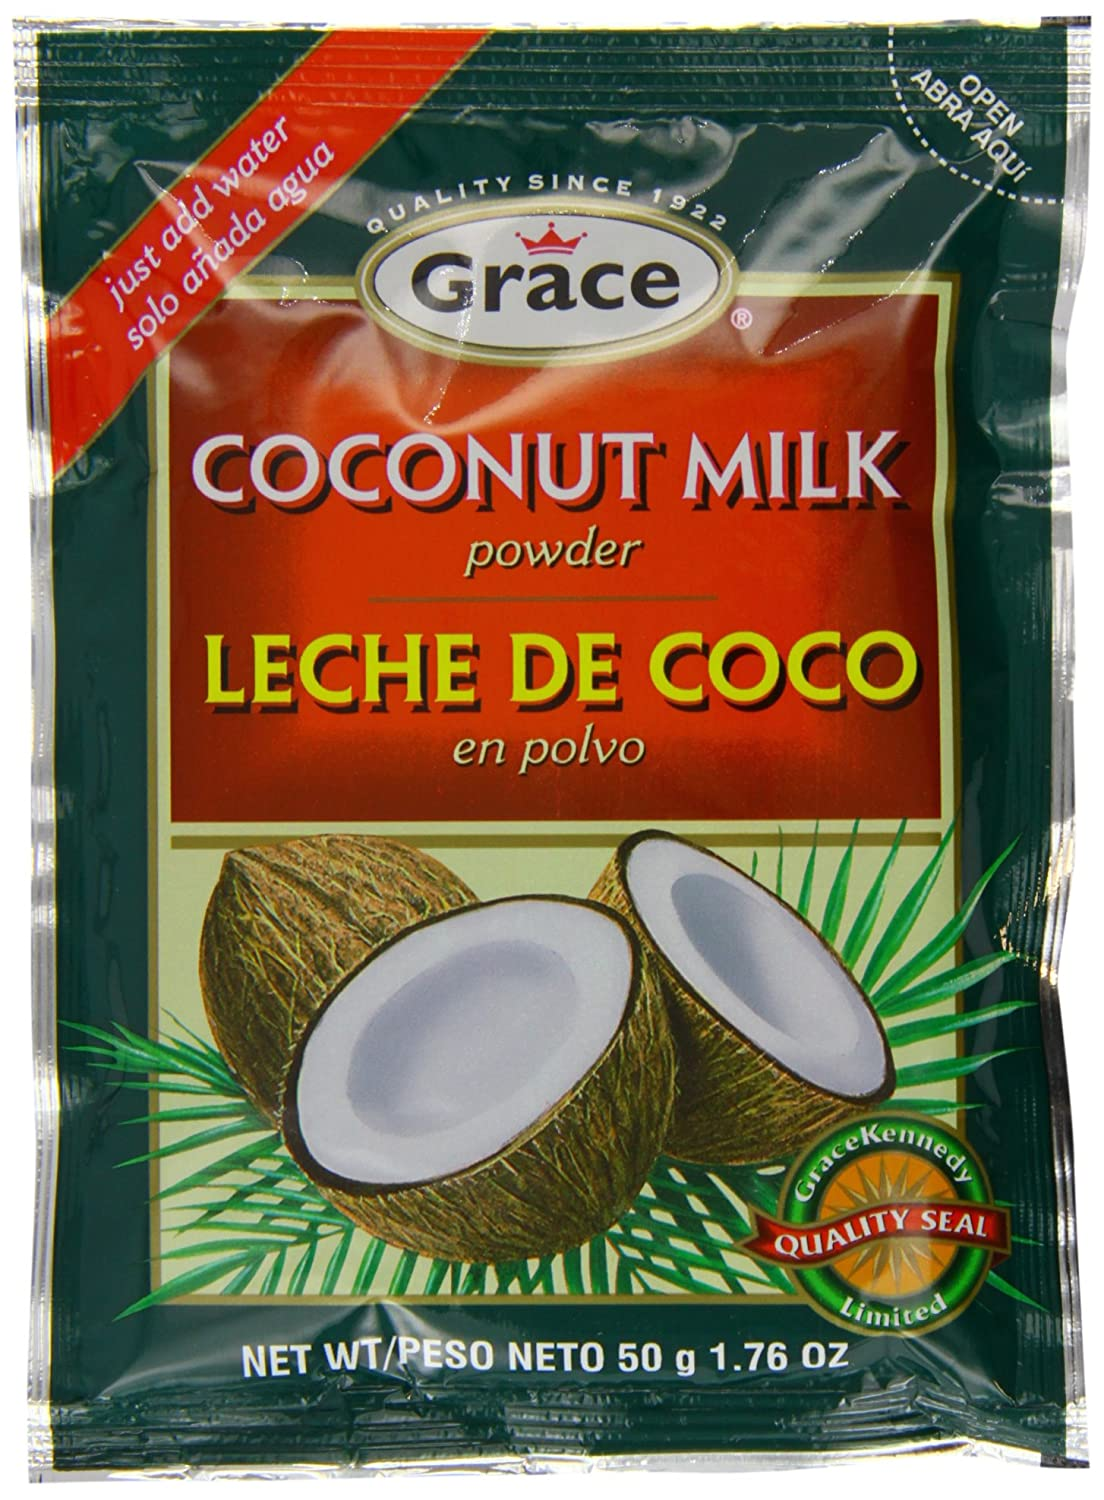 Amazon.com : Grace Coconut Milk Powder 50 g (Pack of 12) : Grocery & Gourmet Food